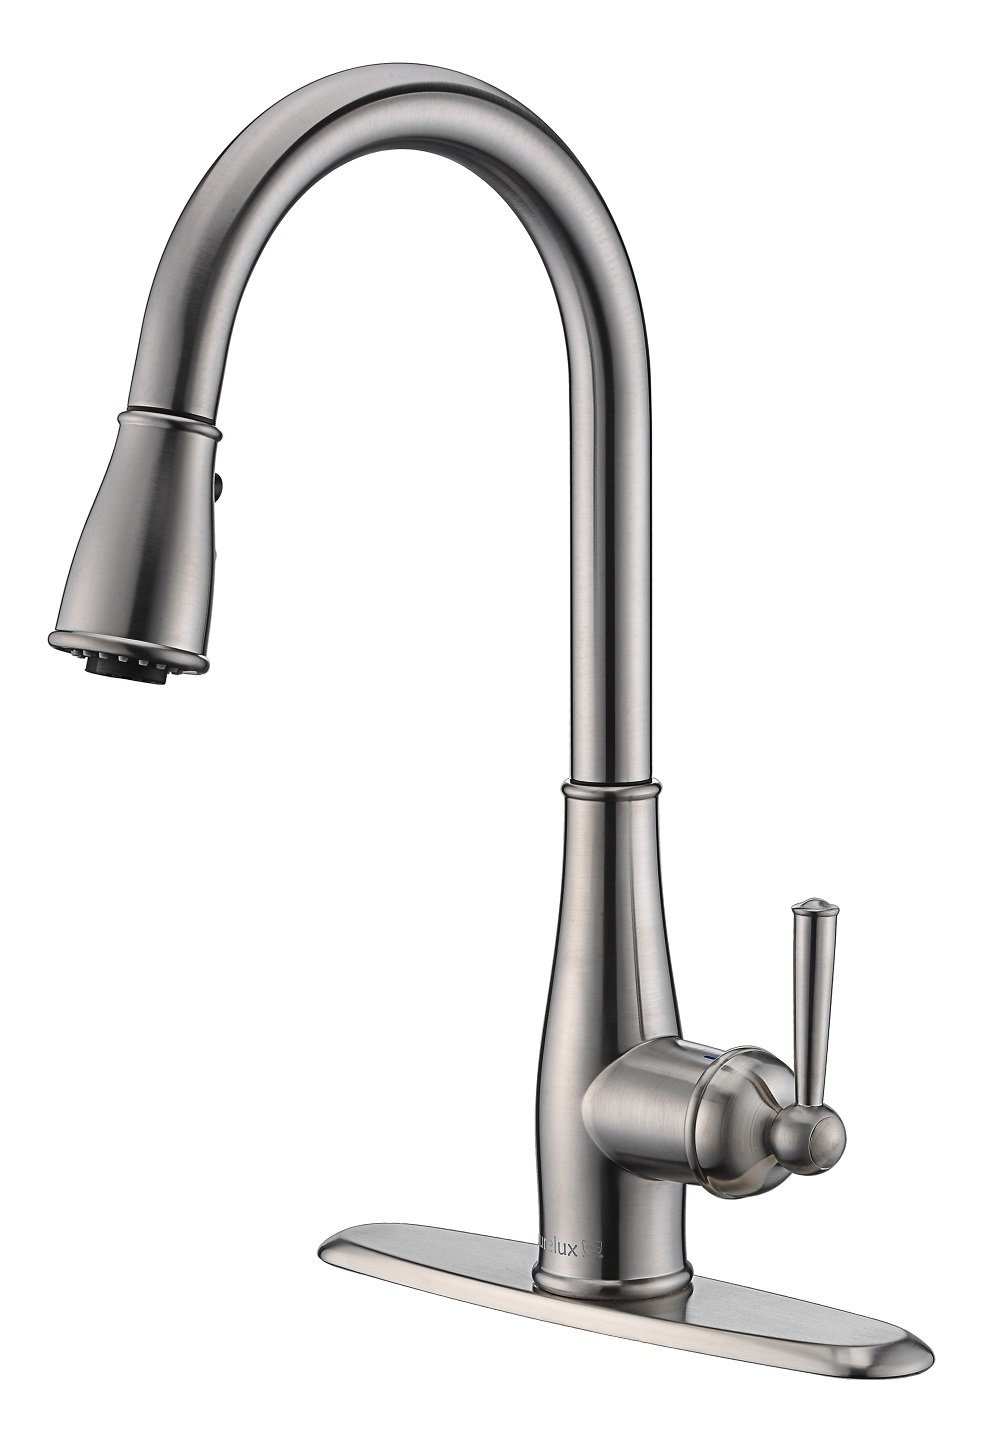 Purelux Aquablade Kitchen Faucet Classic Design Single Handle 3 Mode Kitchen Sink Faucets with Pull Down Sprayer, Brushed Nickel fits 1 or 3 Hole Installation